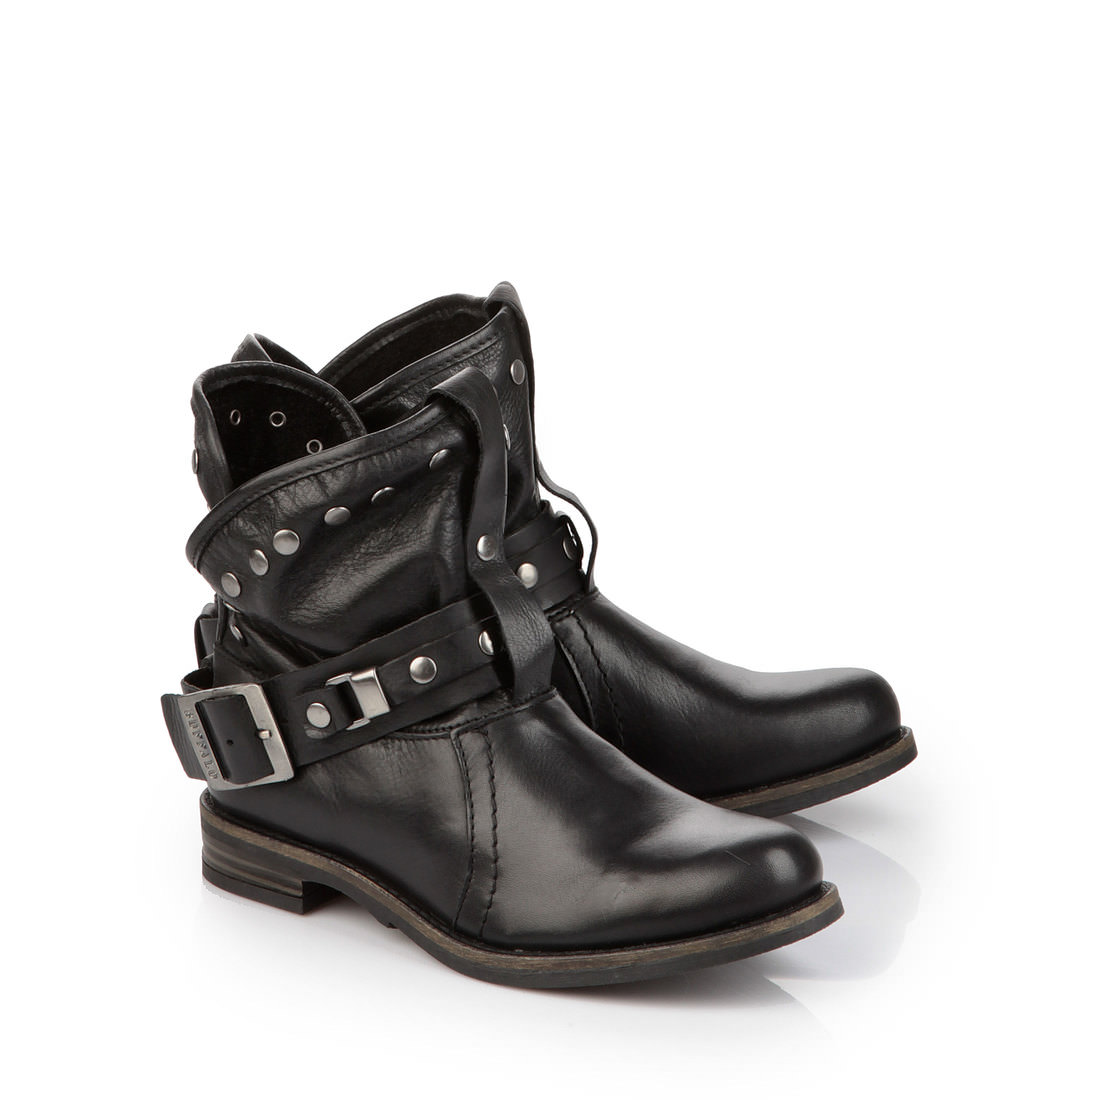 buffalo biker booties in black buy online in buffalo online shop buffalo. Black Bedroom Furniture Sets. Home Design Ideas